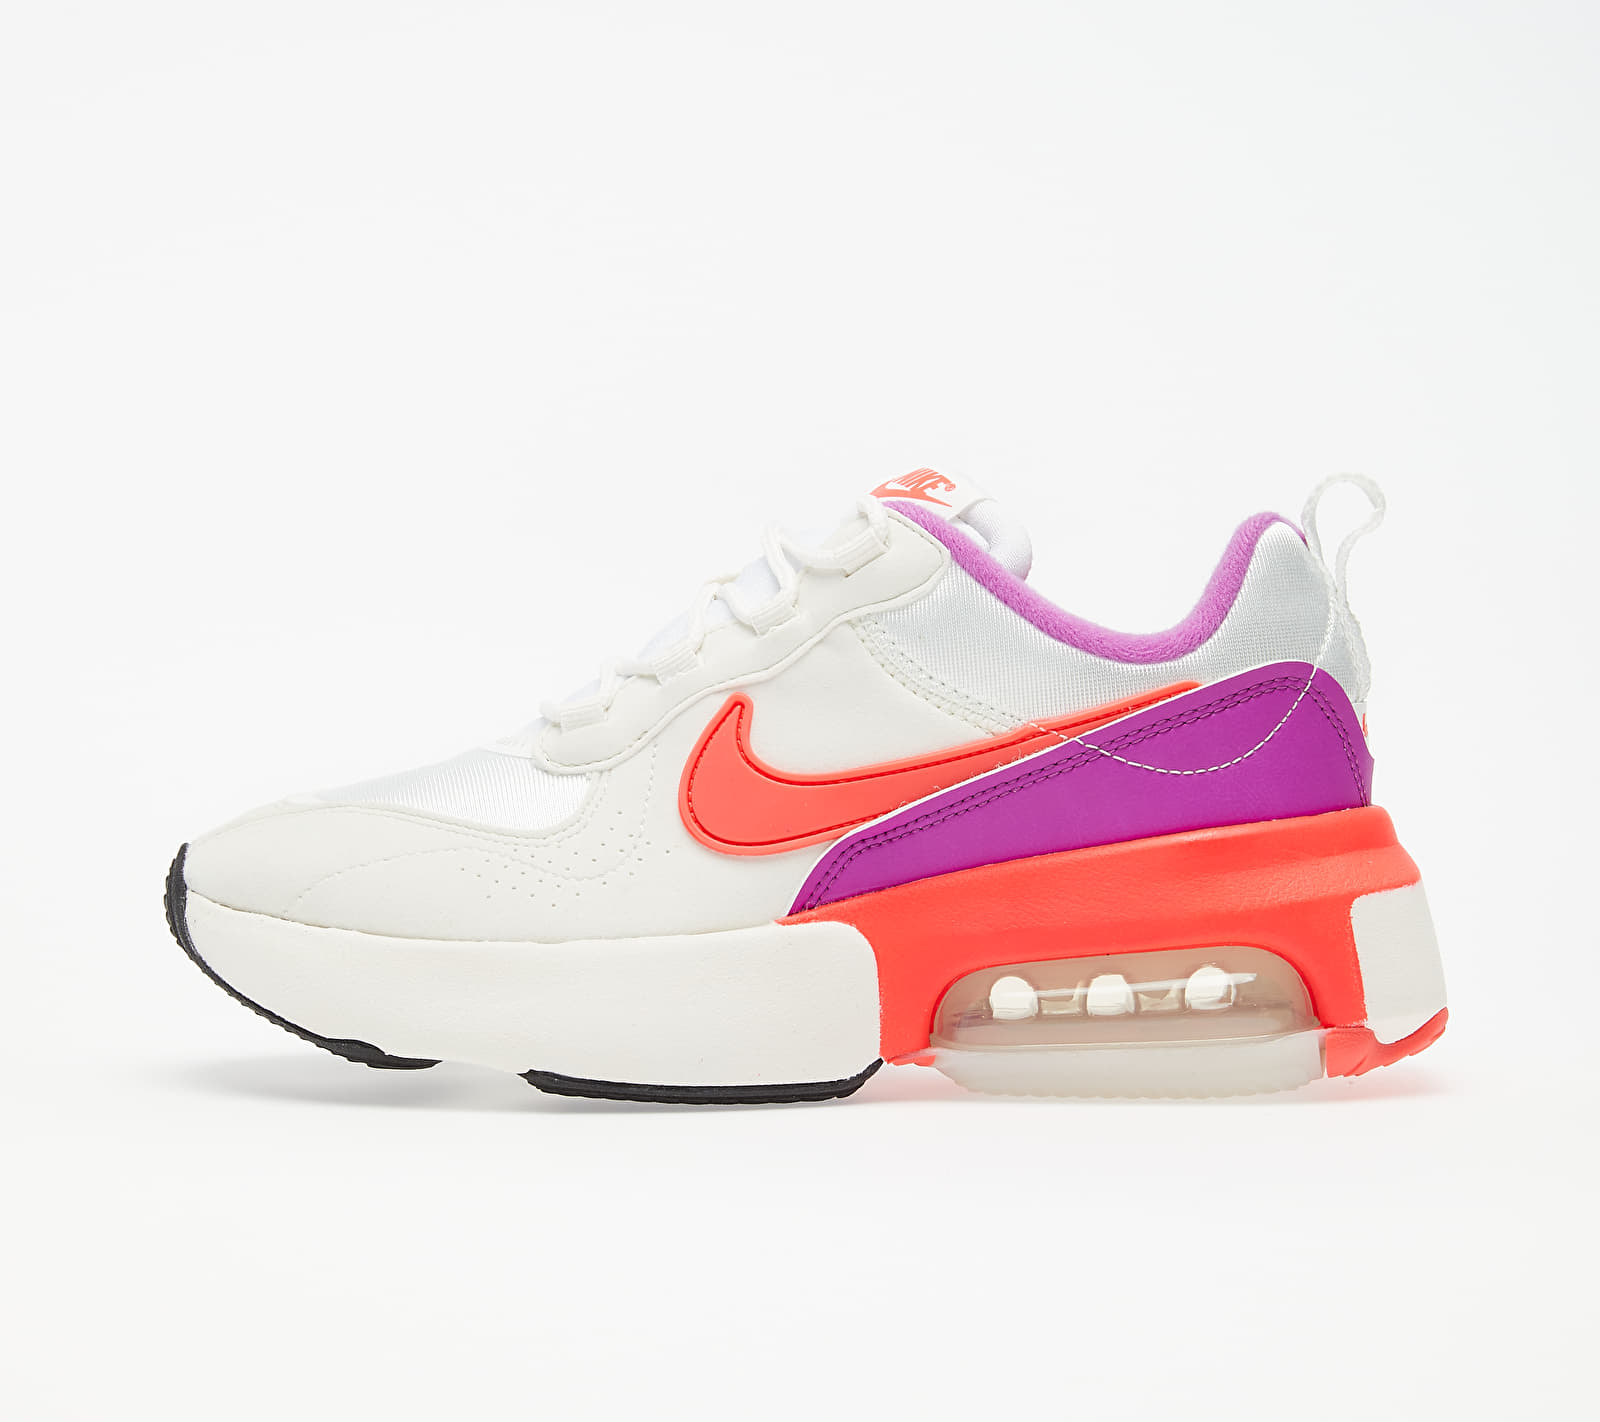 Nike W Air Max Verona Summit White/ Laser Crimson-Sail-Magenta EUR 35.5